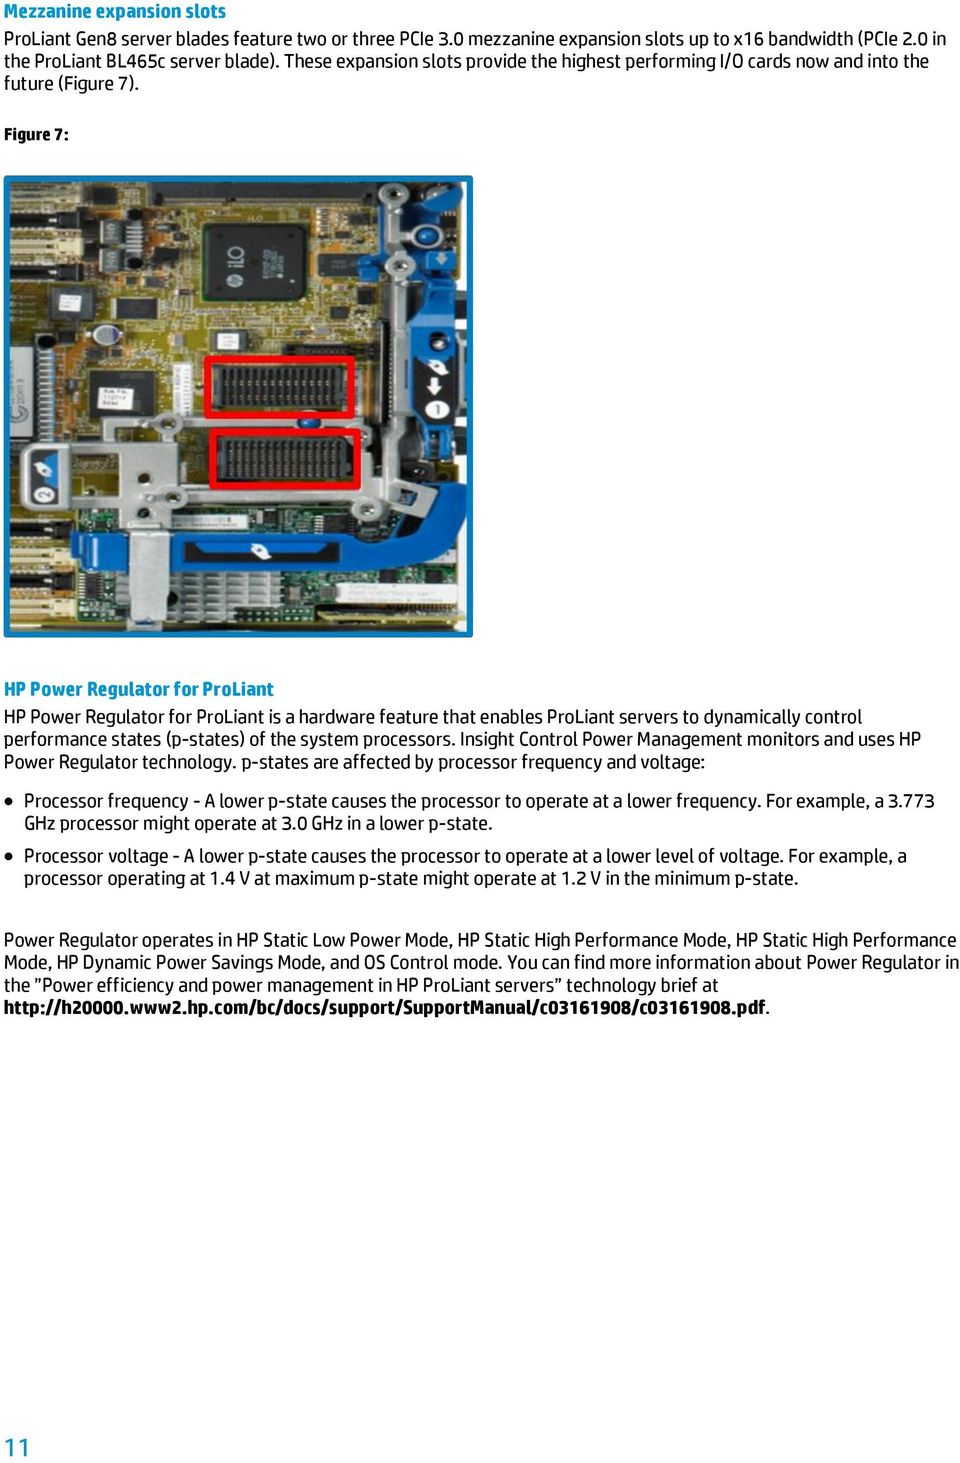 Figure 7: HP Power Regulator for ProLiant HP Power Regulator for ProLiant is a hardware feature that enables ProLiant servers to dynamically control performance states (p-states) of the system